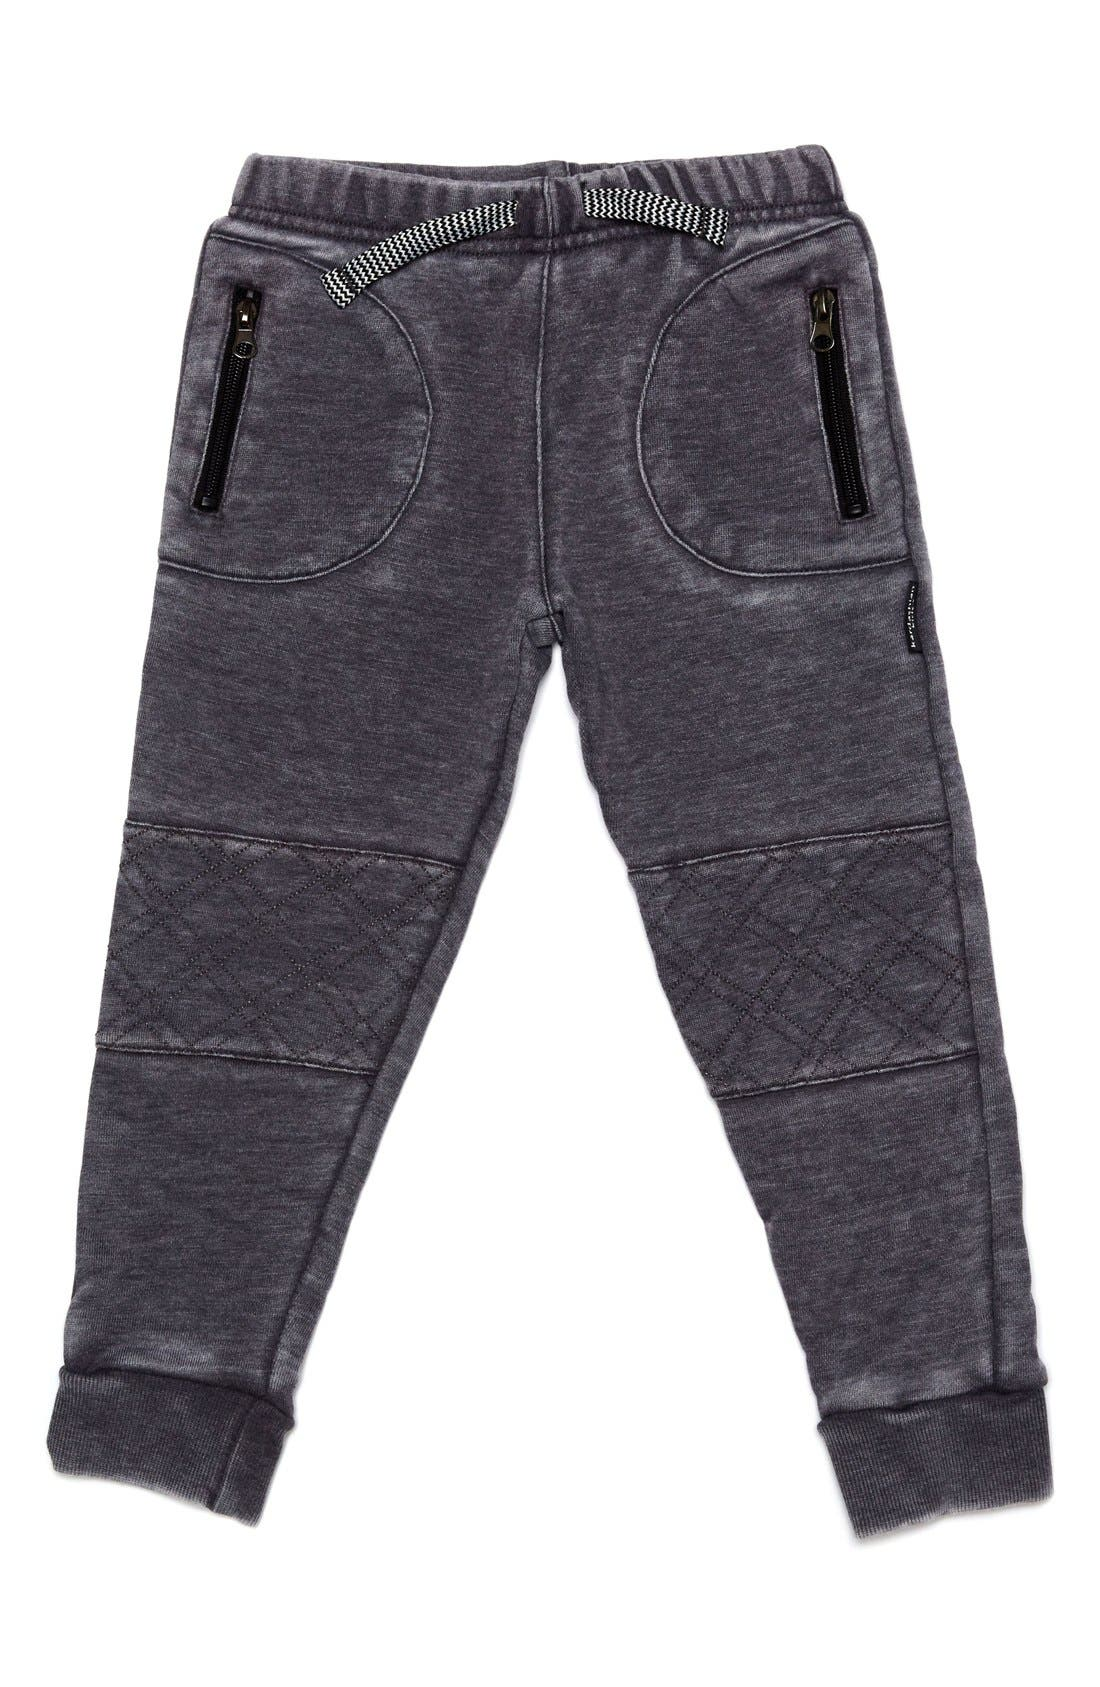 Alternate Image 1 Selected - Kardashian Kids Quilted Jogger Pants (Toddler Boys & Little Boys)